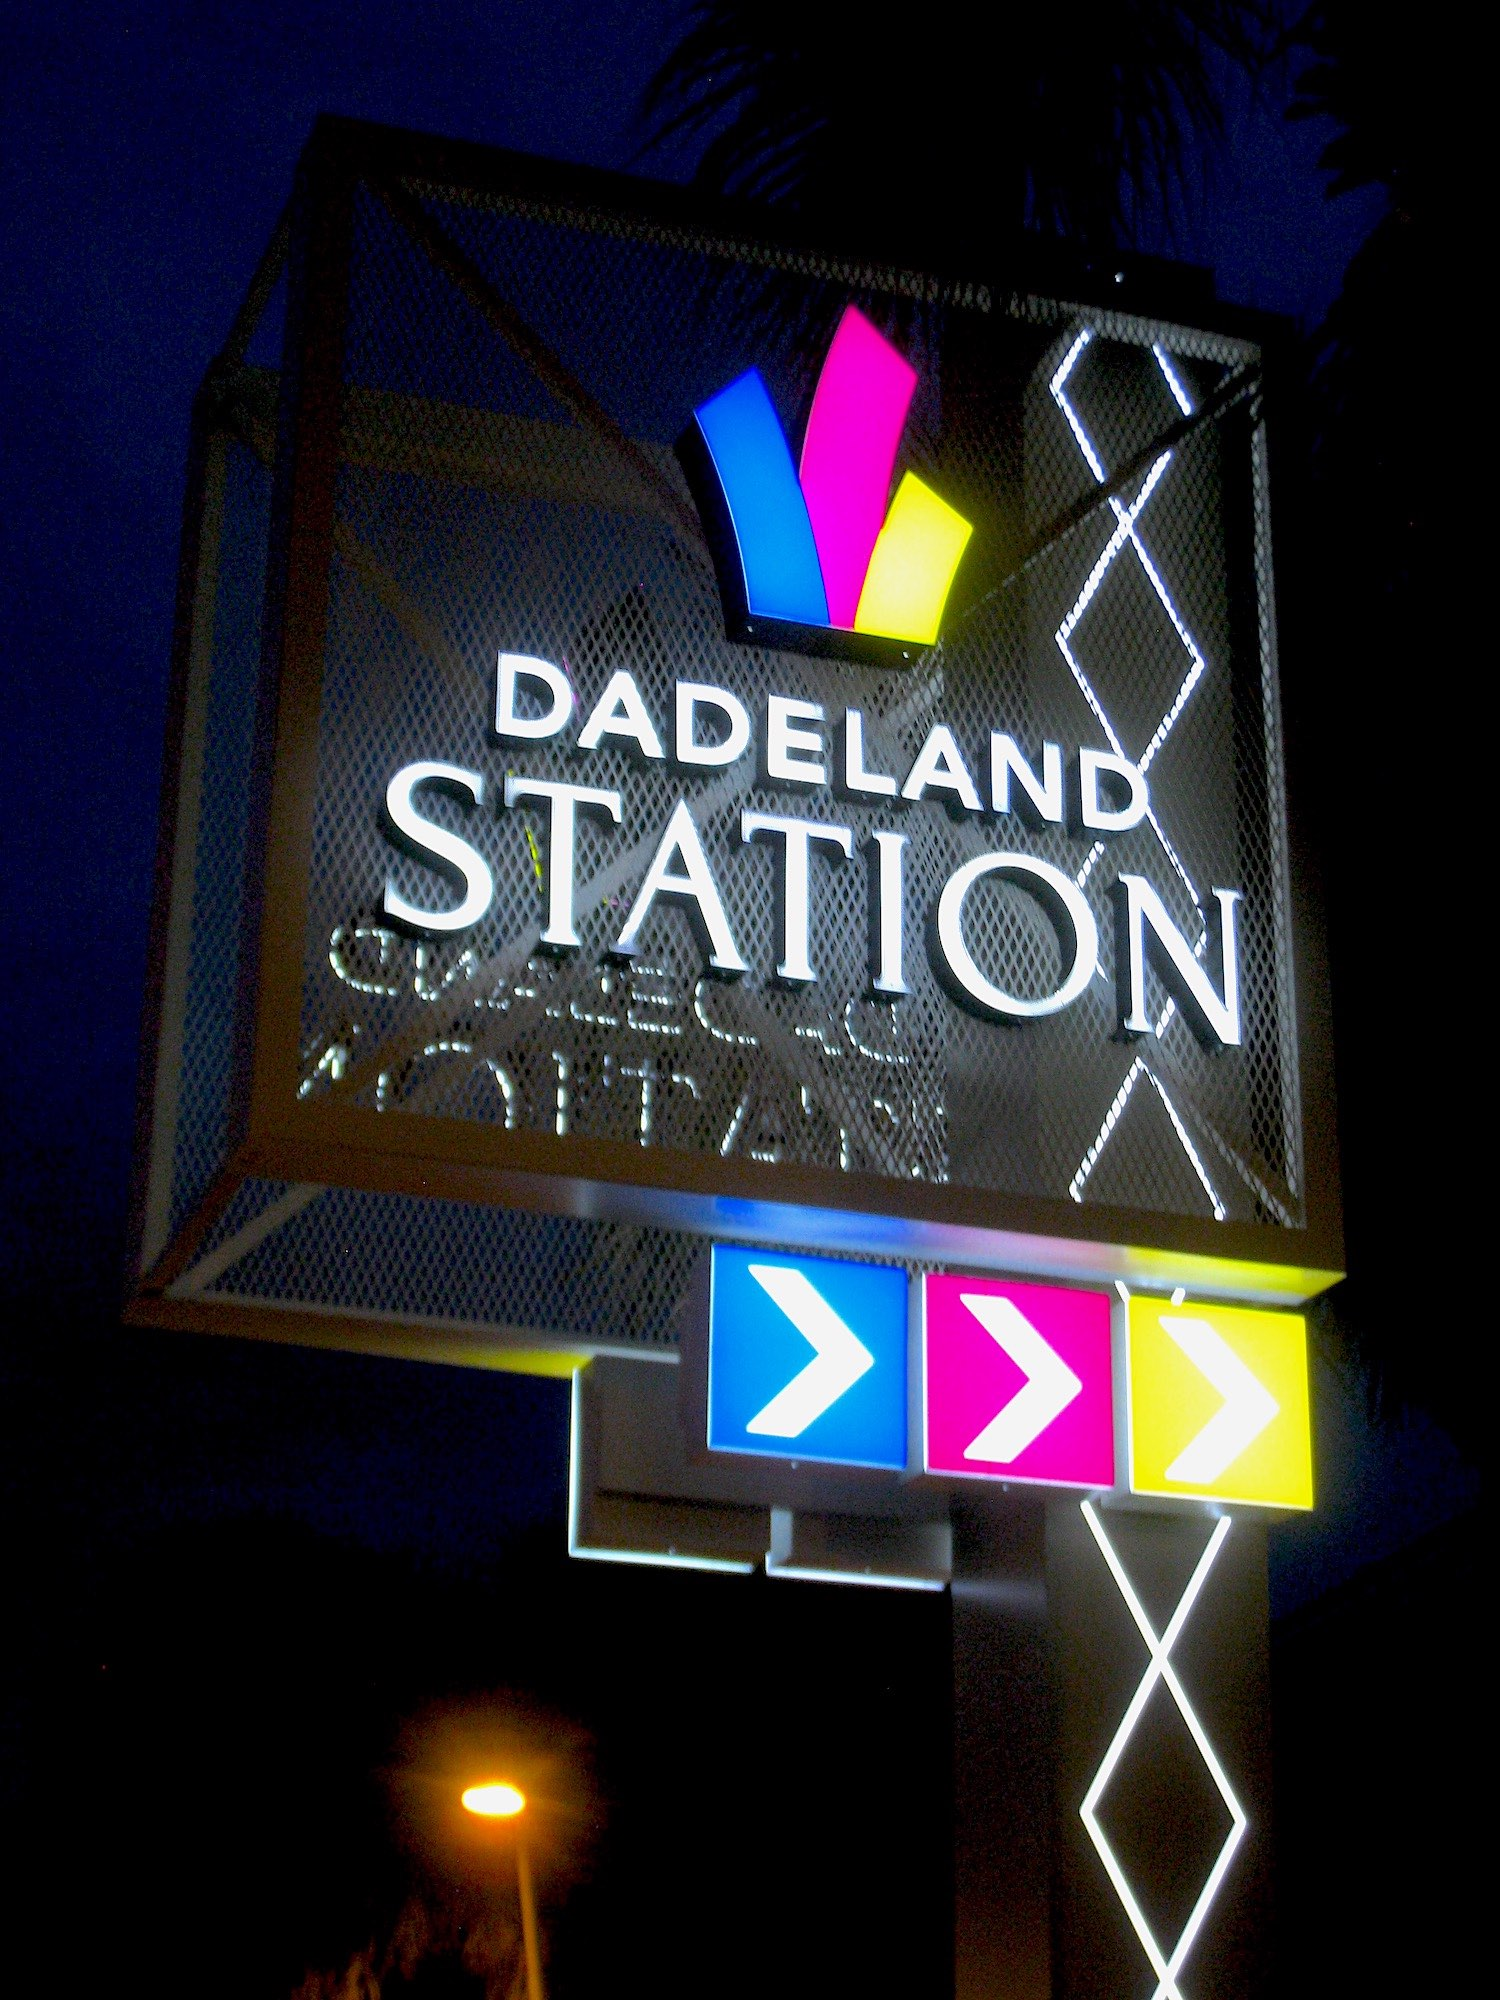 DADELAND STATION  - MIAMI, FL